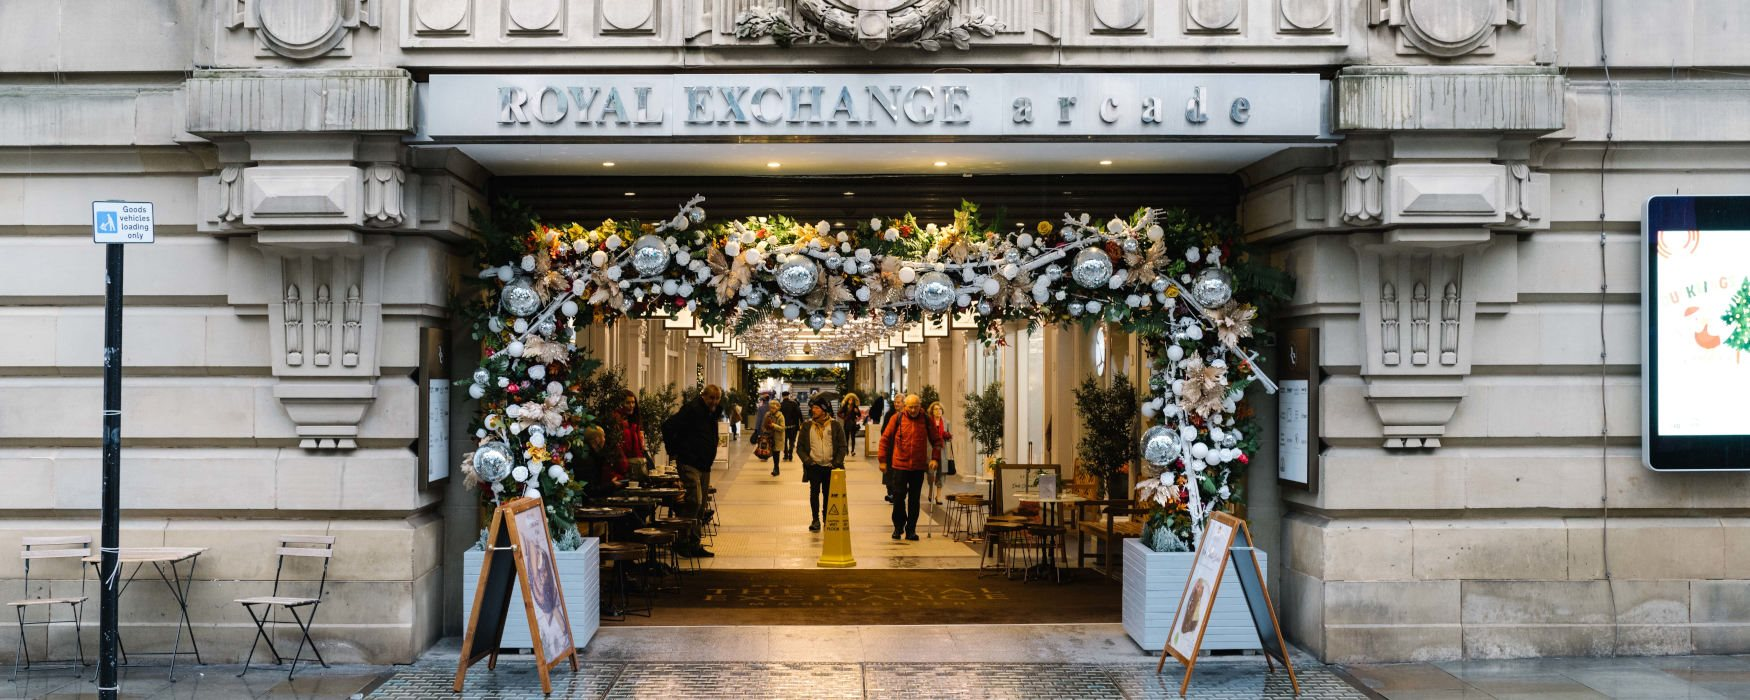 Royal Exchange Shopping Arcade